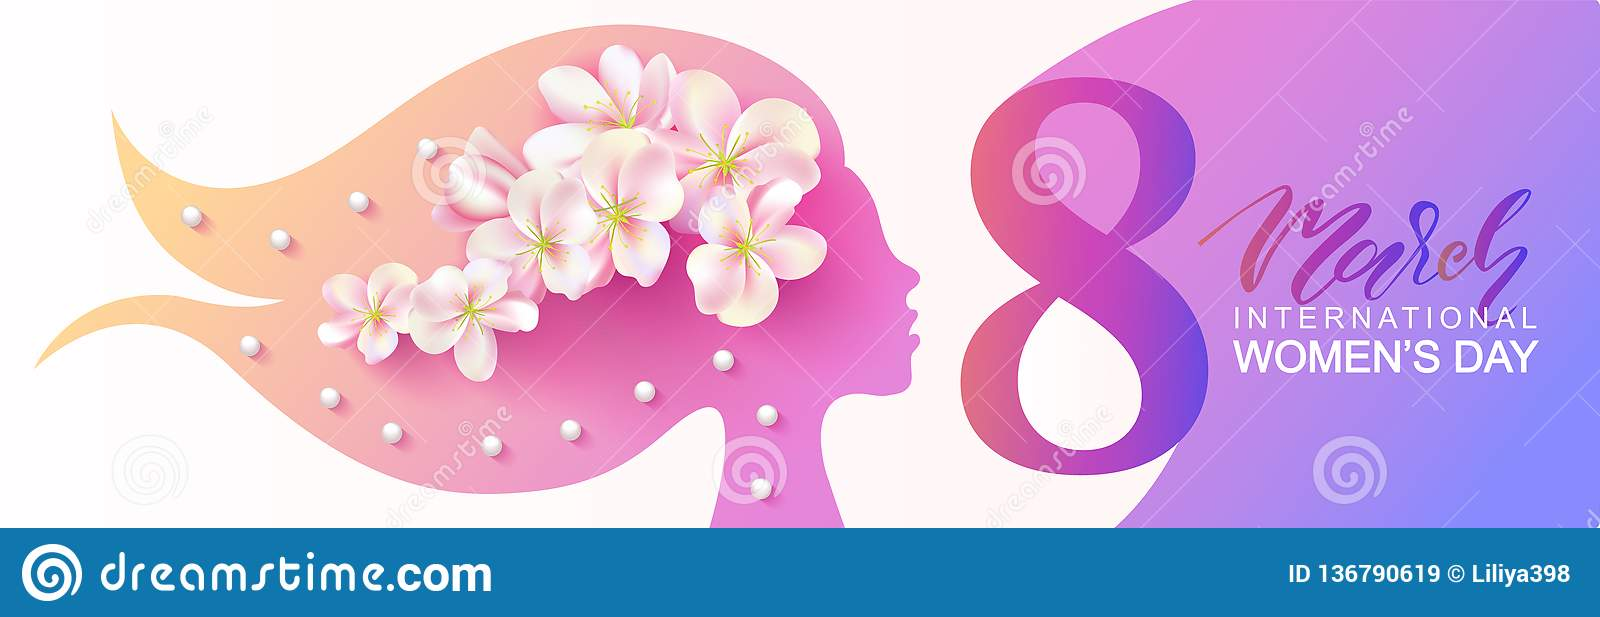 8 March Happy Women s Day banner. Beautiful Background with female silhouette ,flowers and beads.Vector illustration for